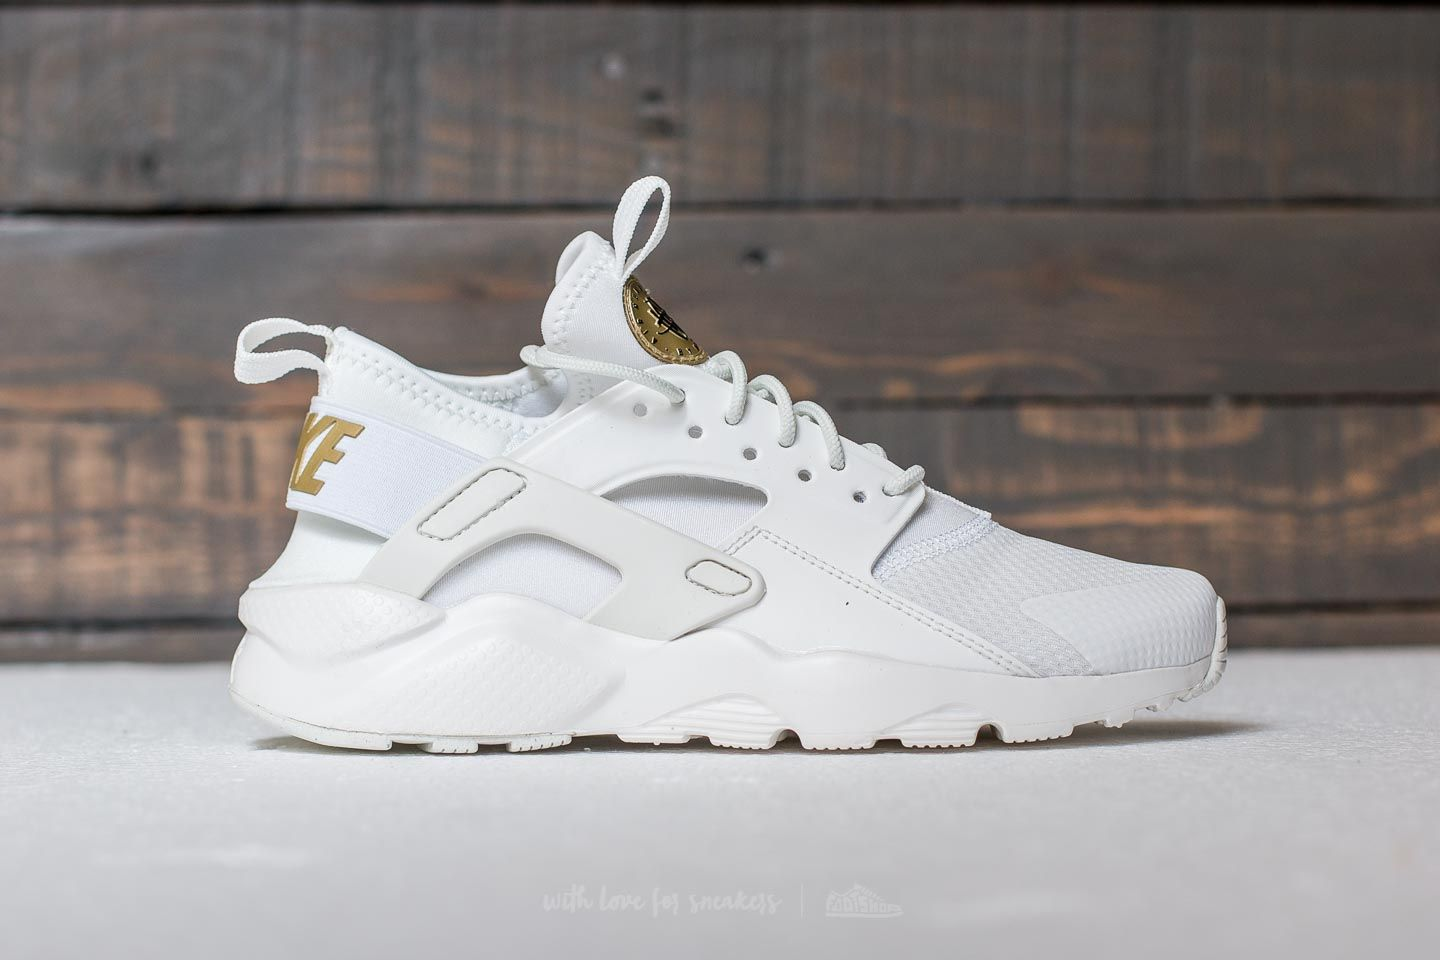 genio Alentar influenza  Women's shoes Nike Air Huarache Run Ultra GS Summit White/ Metallic Gold